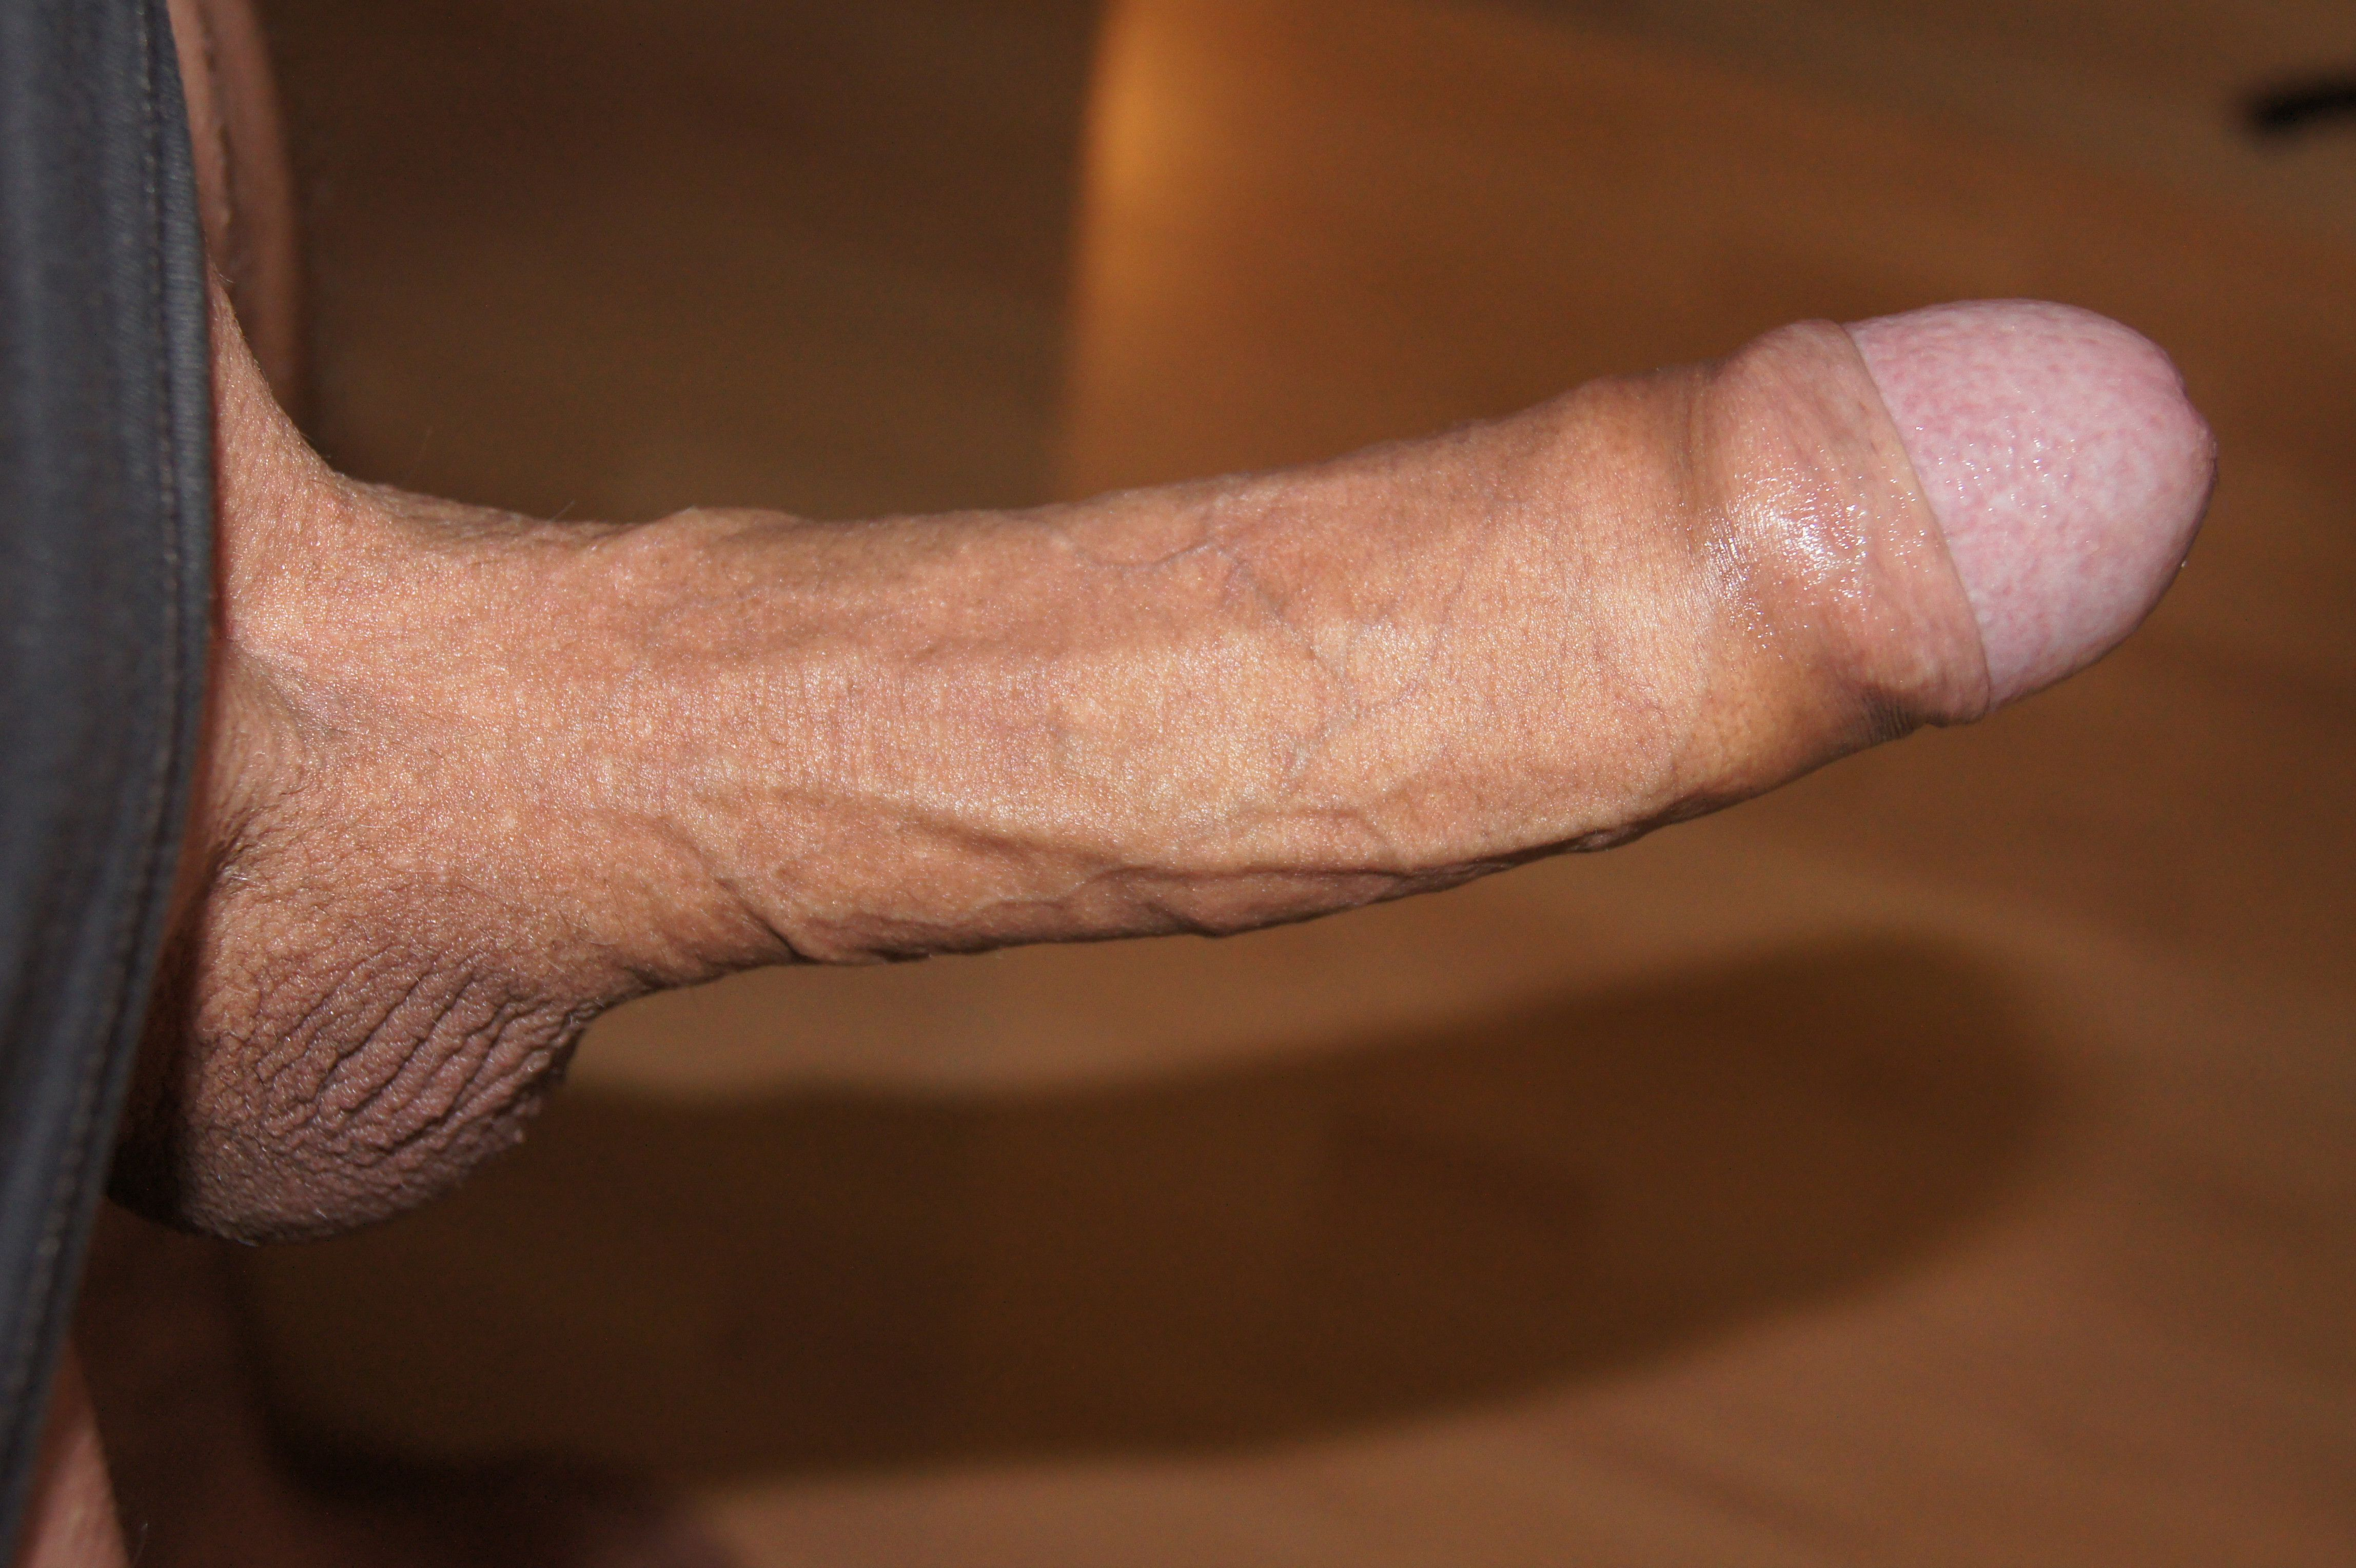 shaved penis pics